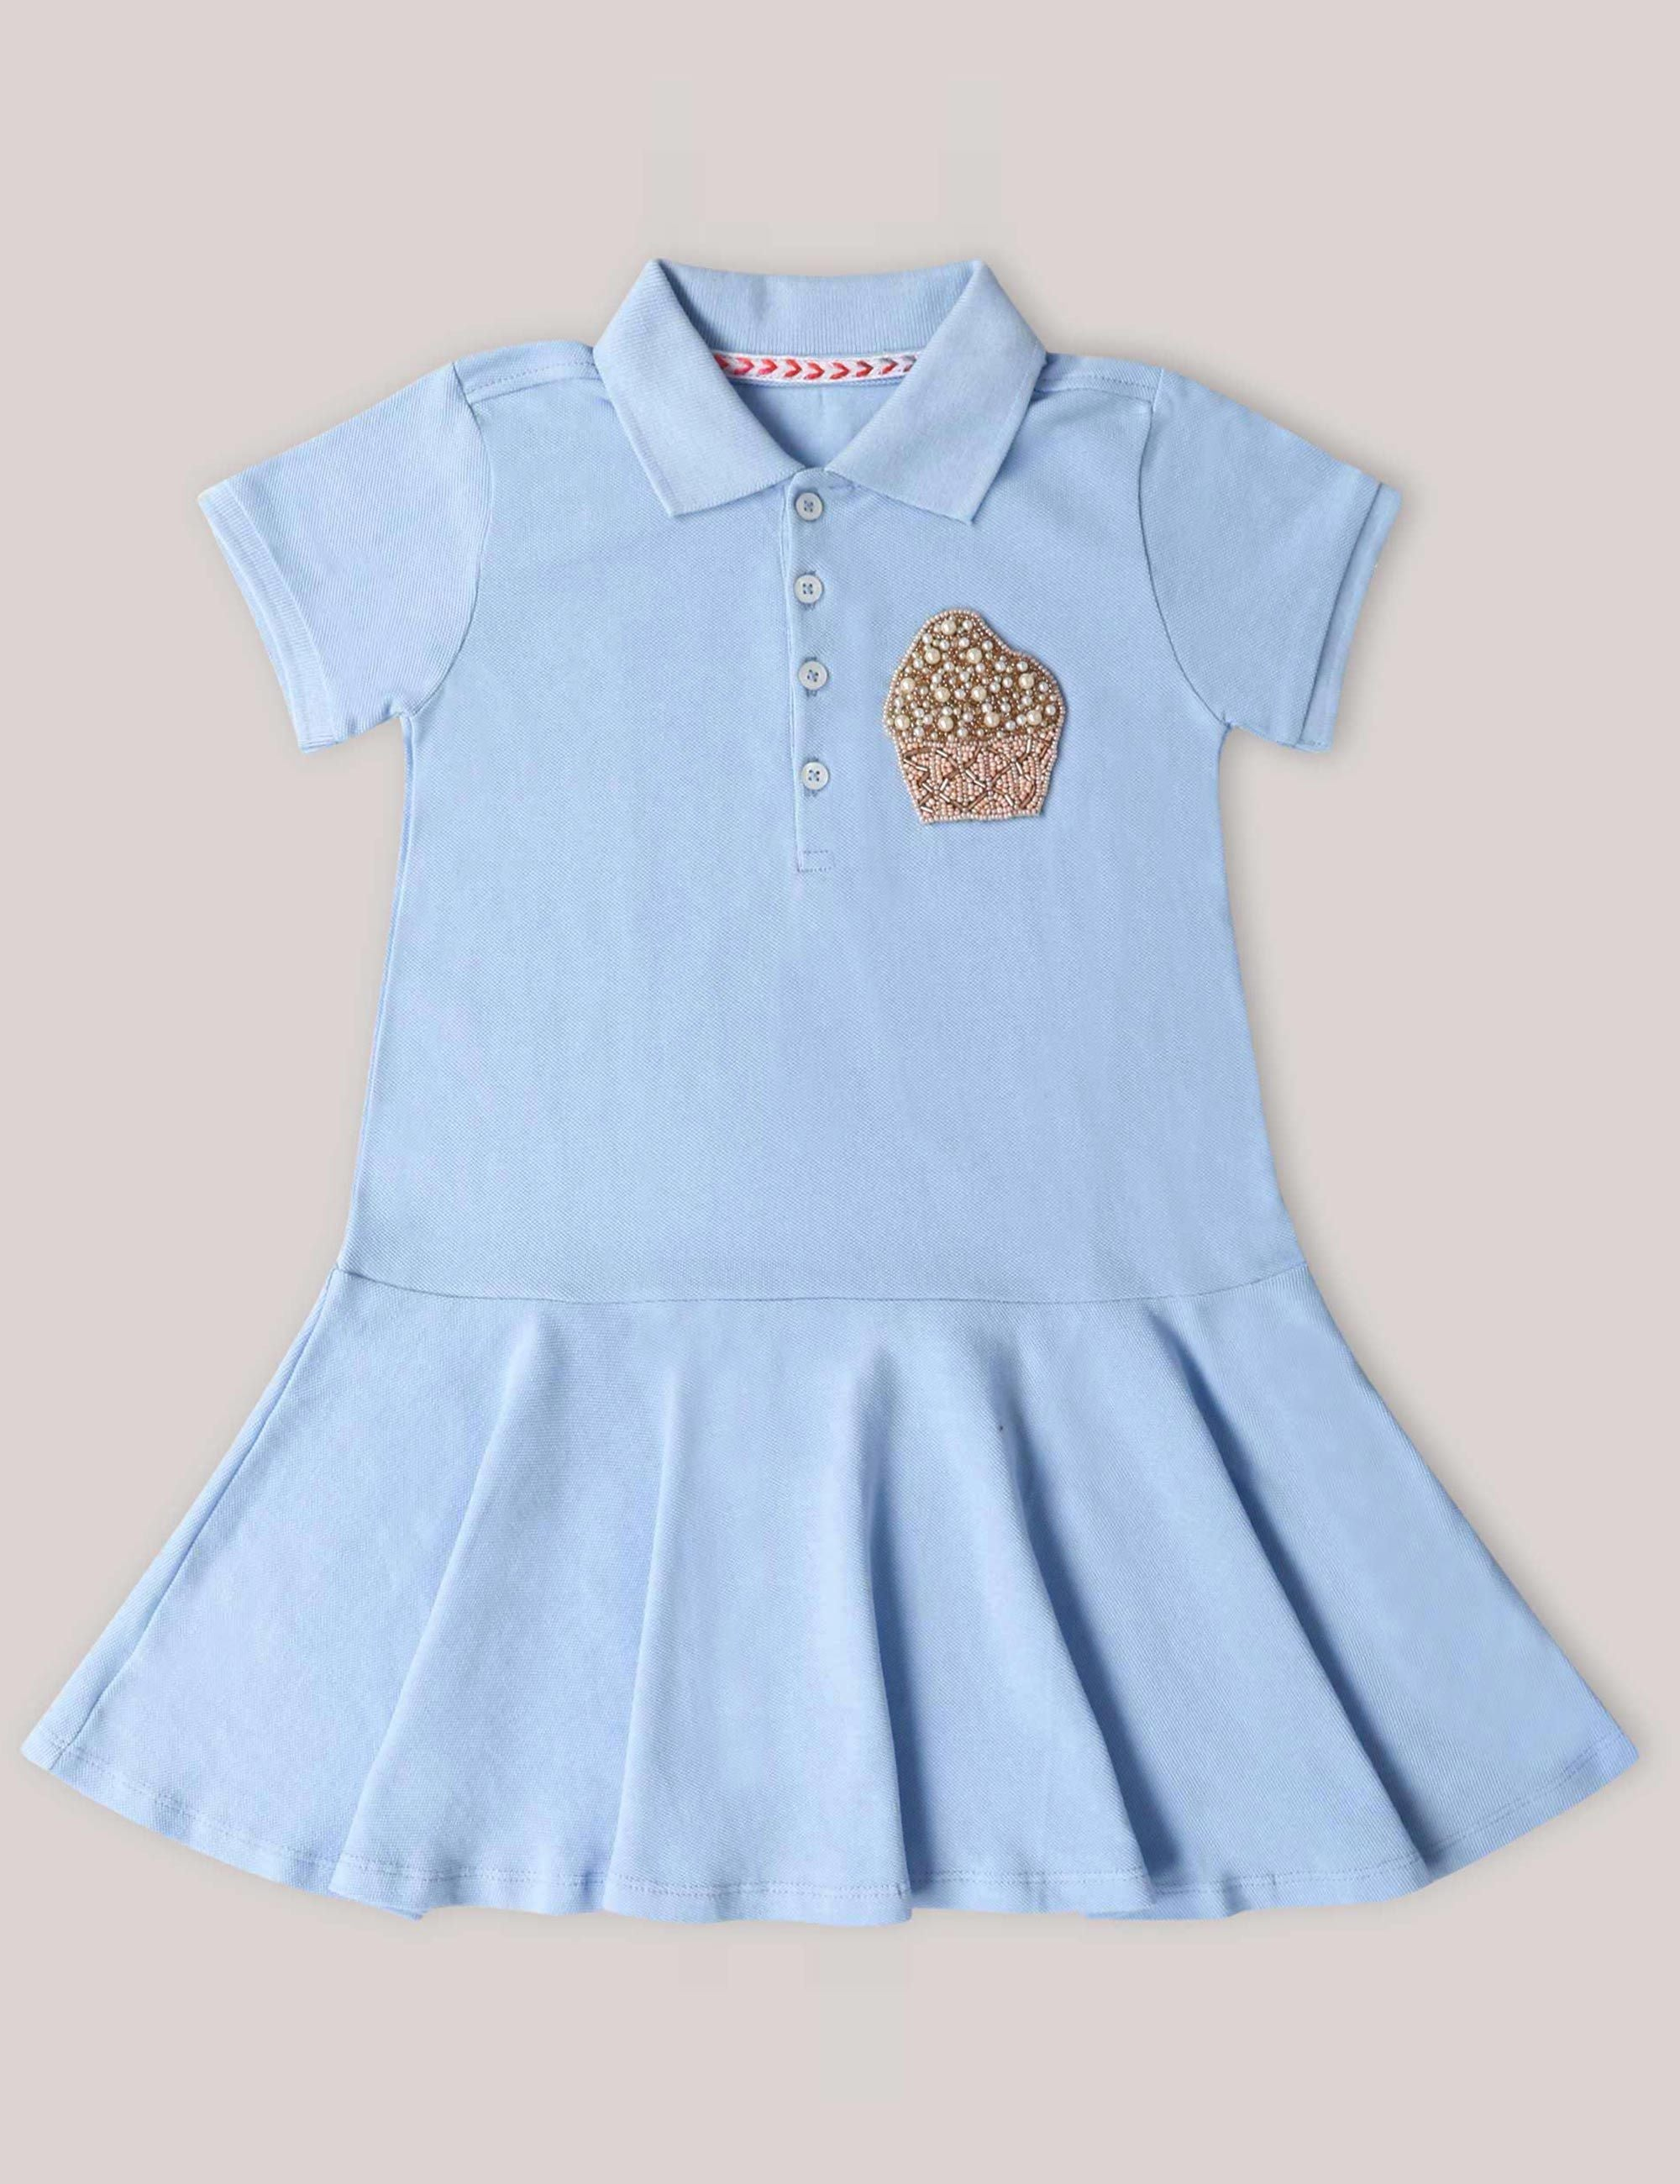 d0c81a028d Girls Polo T-Shirt Dress with very Quirky Cupcake Patch On a Corner .